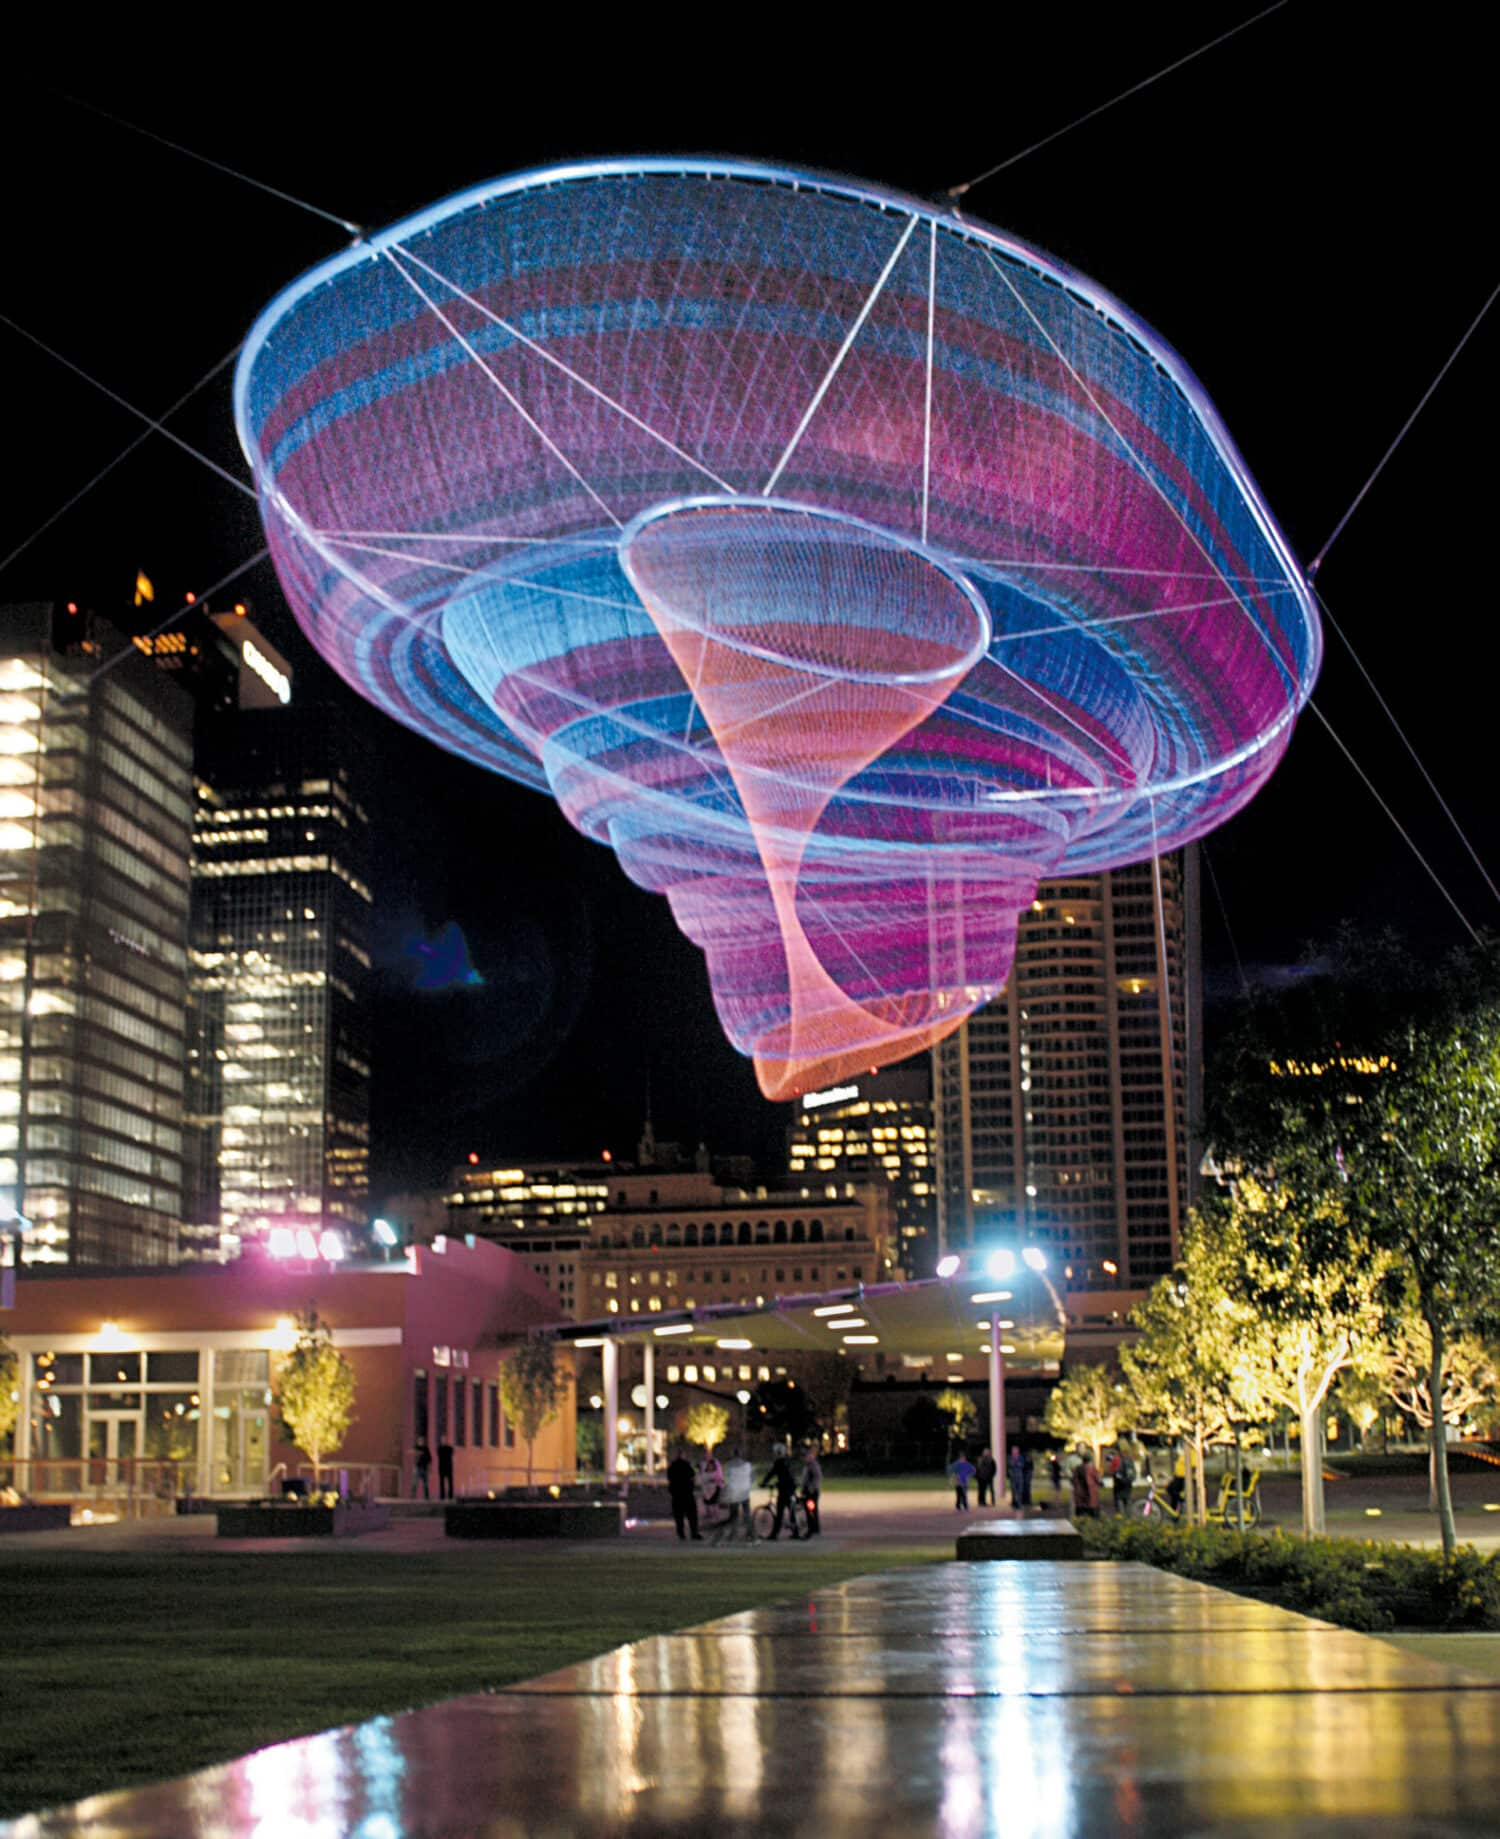 Janet Echelman, Her Secret is Patience, 2009, Civic Space Park, 424 North Central Avenue, Phoenix, AZ 85004, United States. Photo: Christina O'Haver